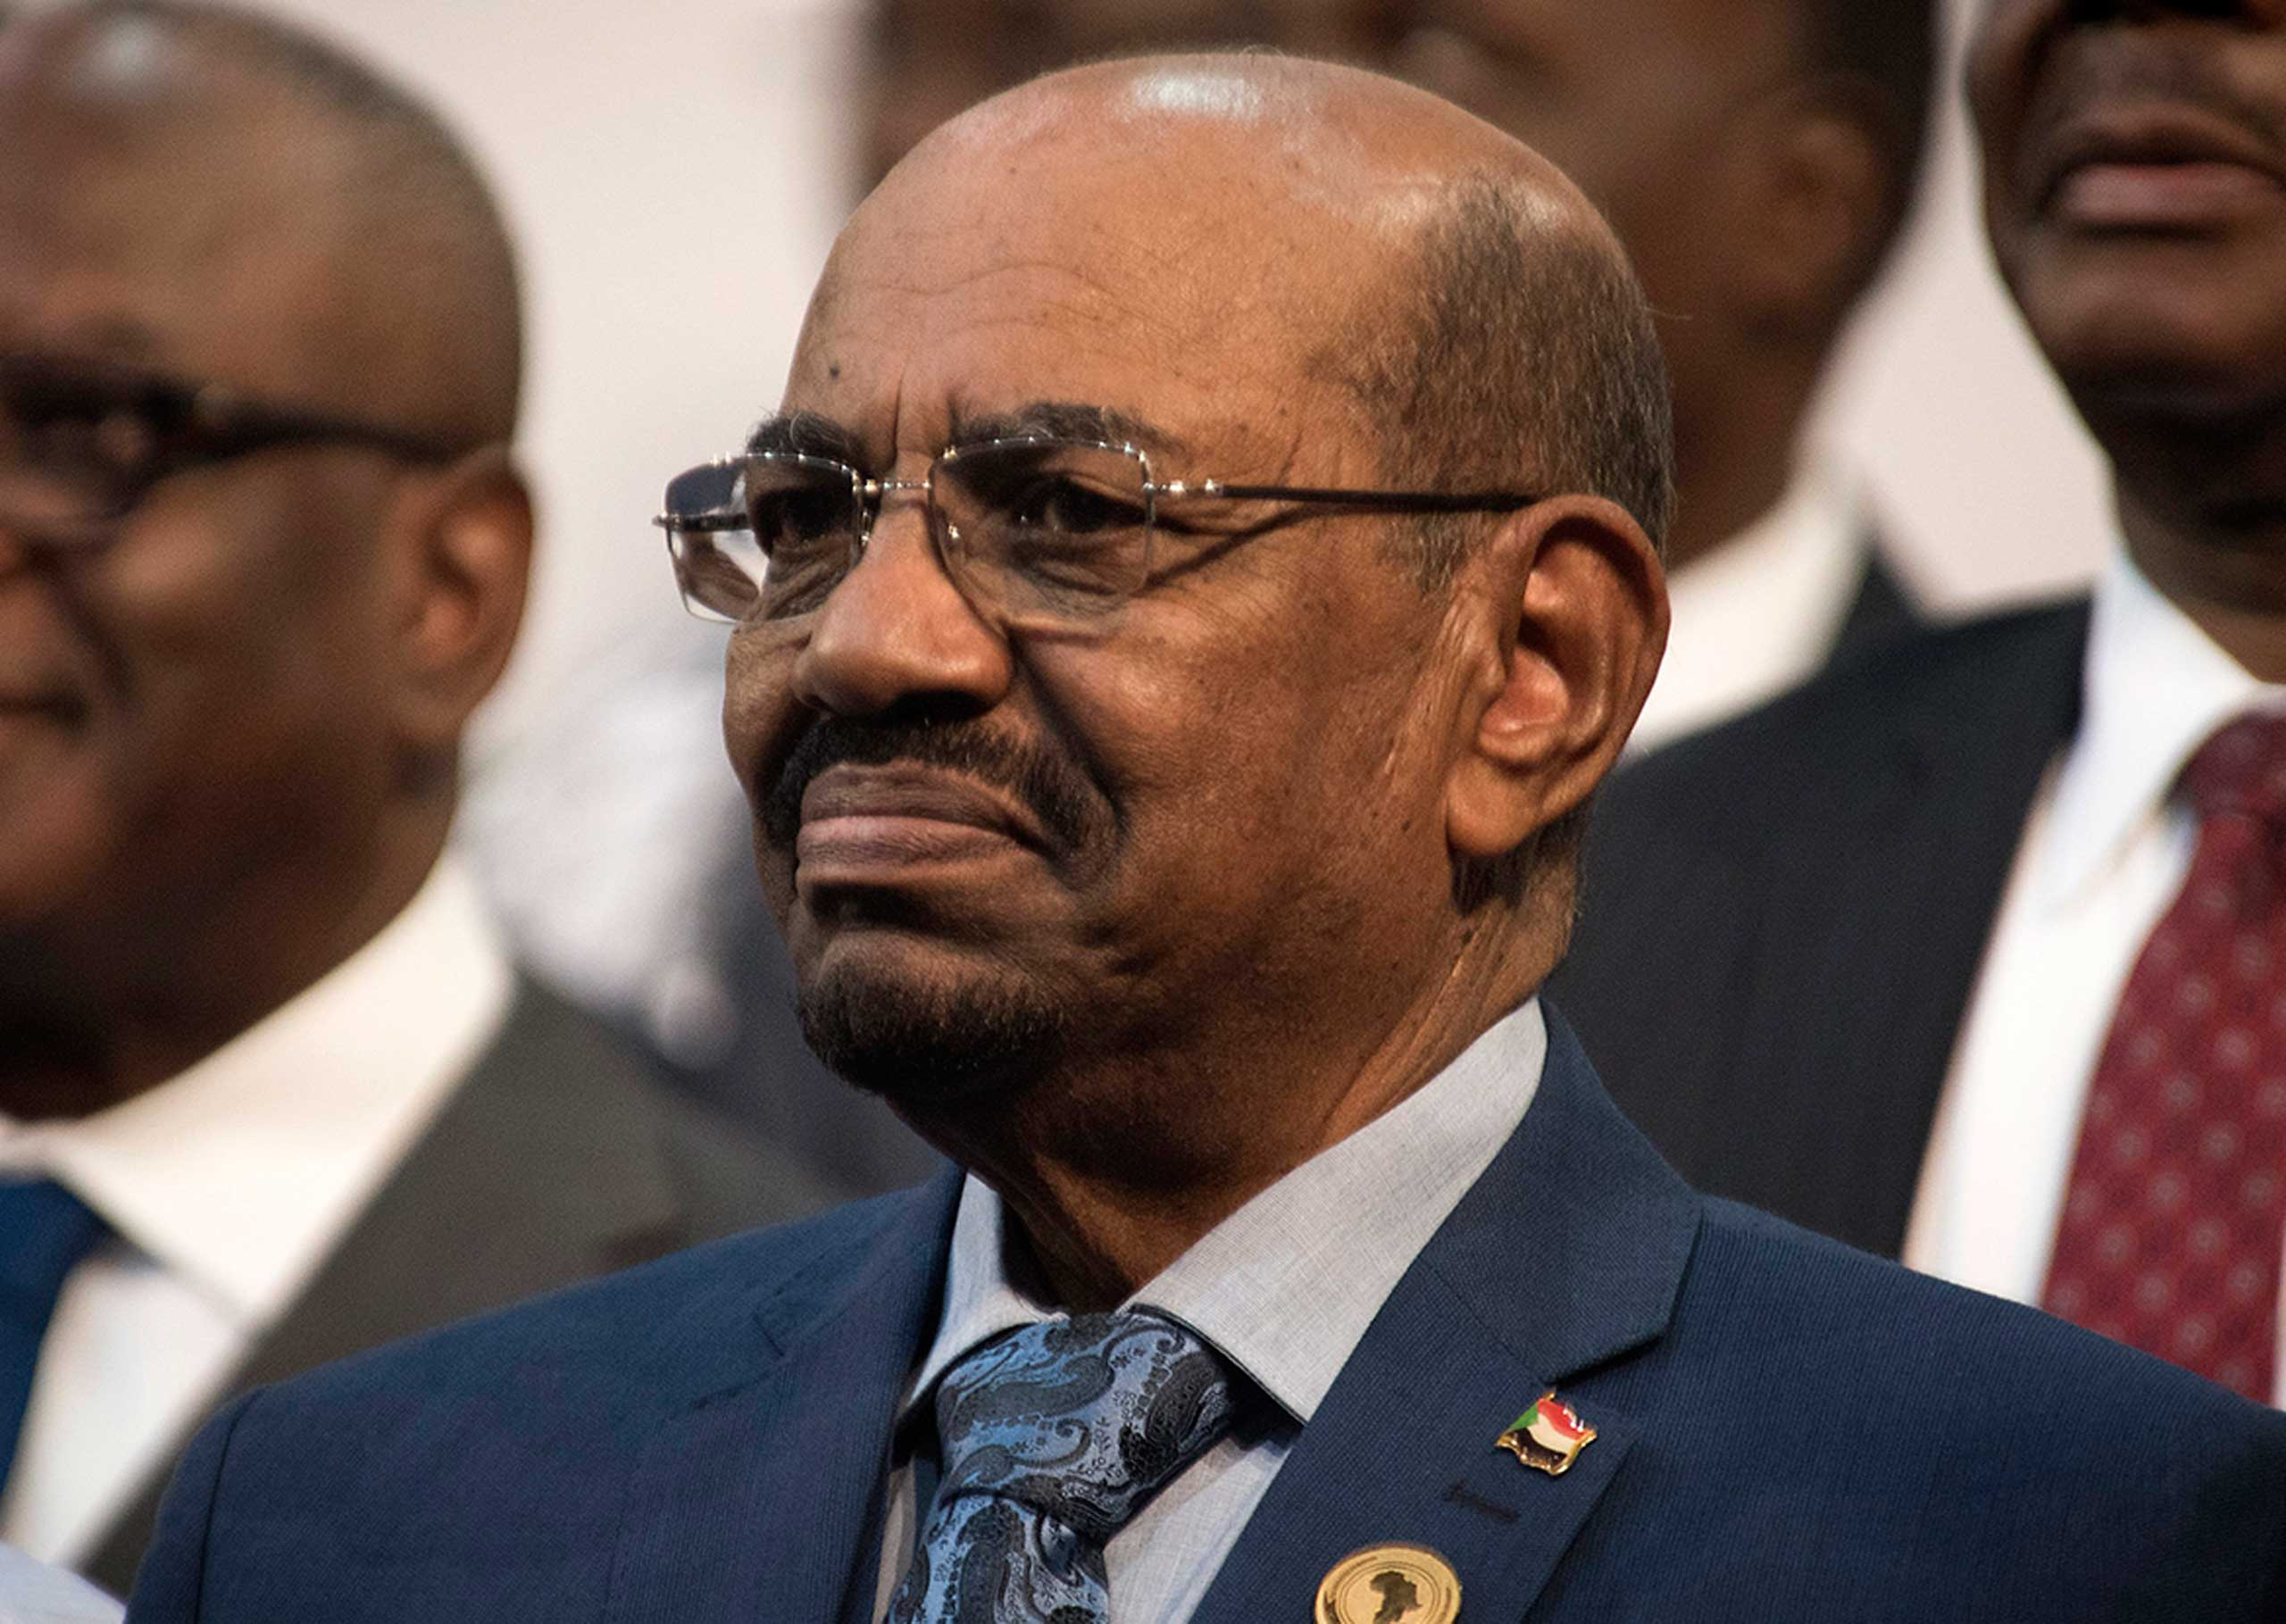 Sudanese President Omar al-Bashir is seen during the opening session of the African Union summit in Johannesburg on June 14, 2015